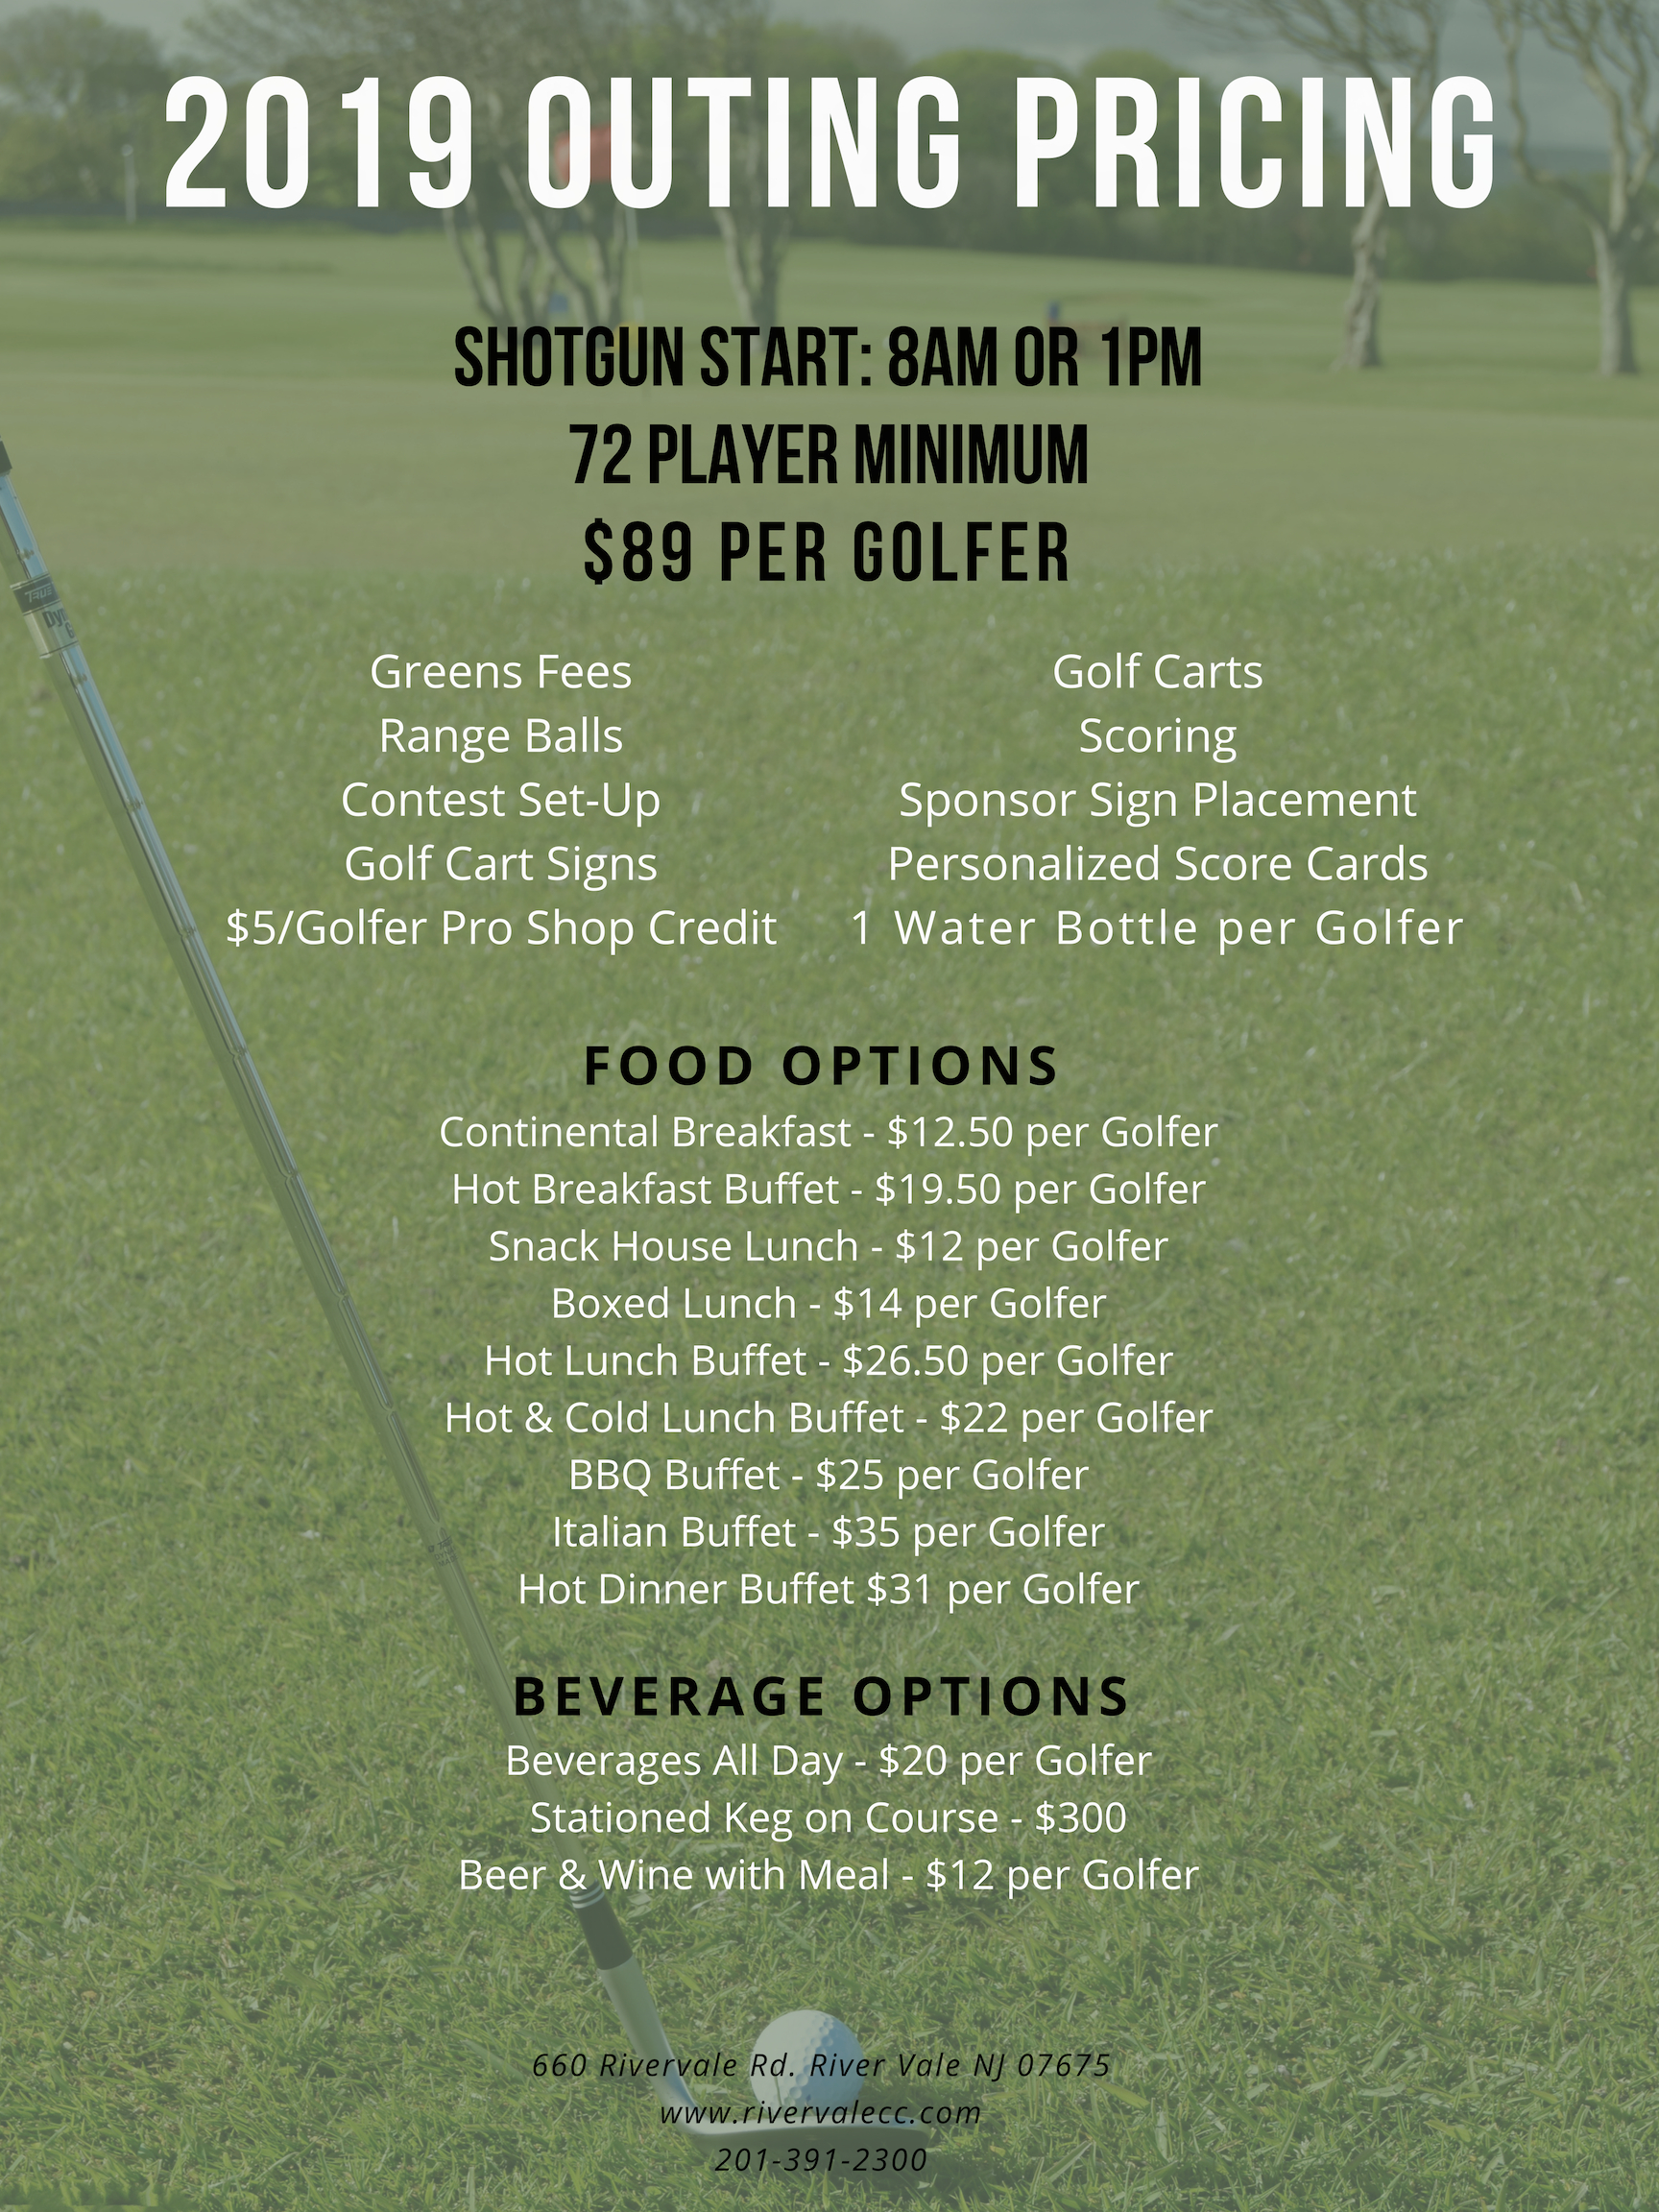 2019 Outing Pricing